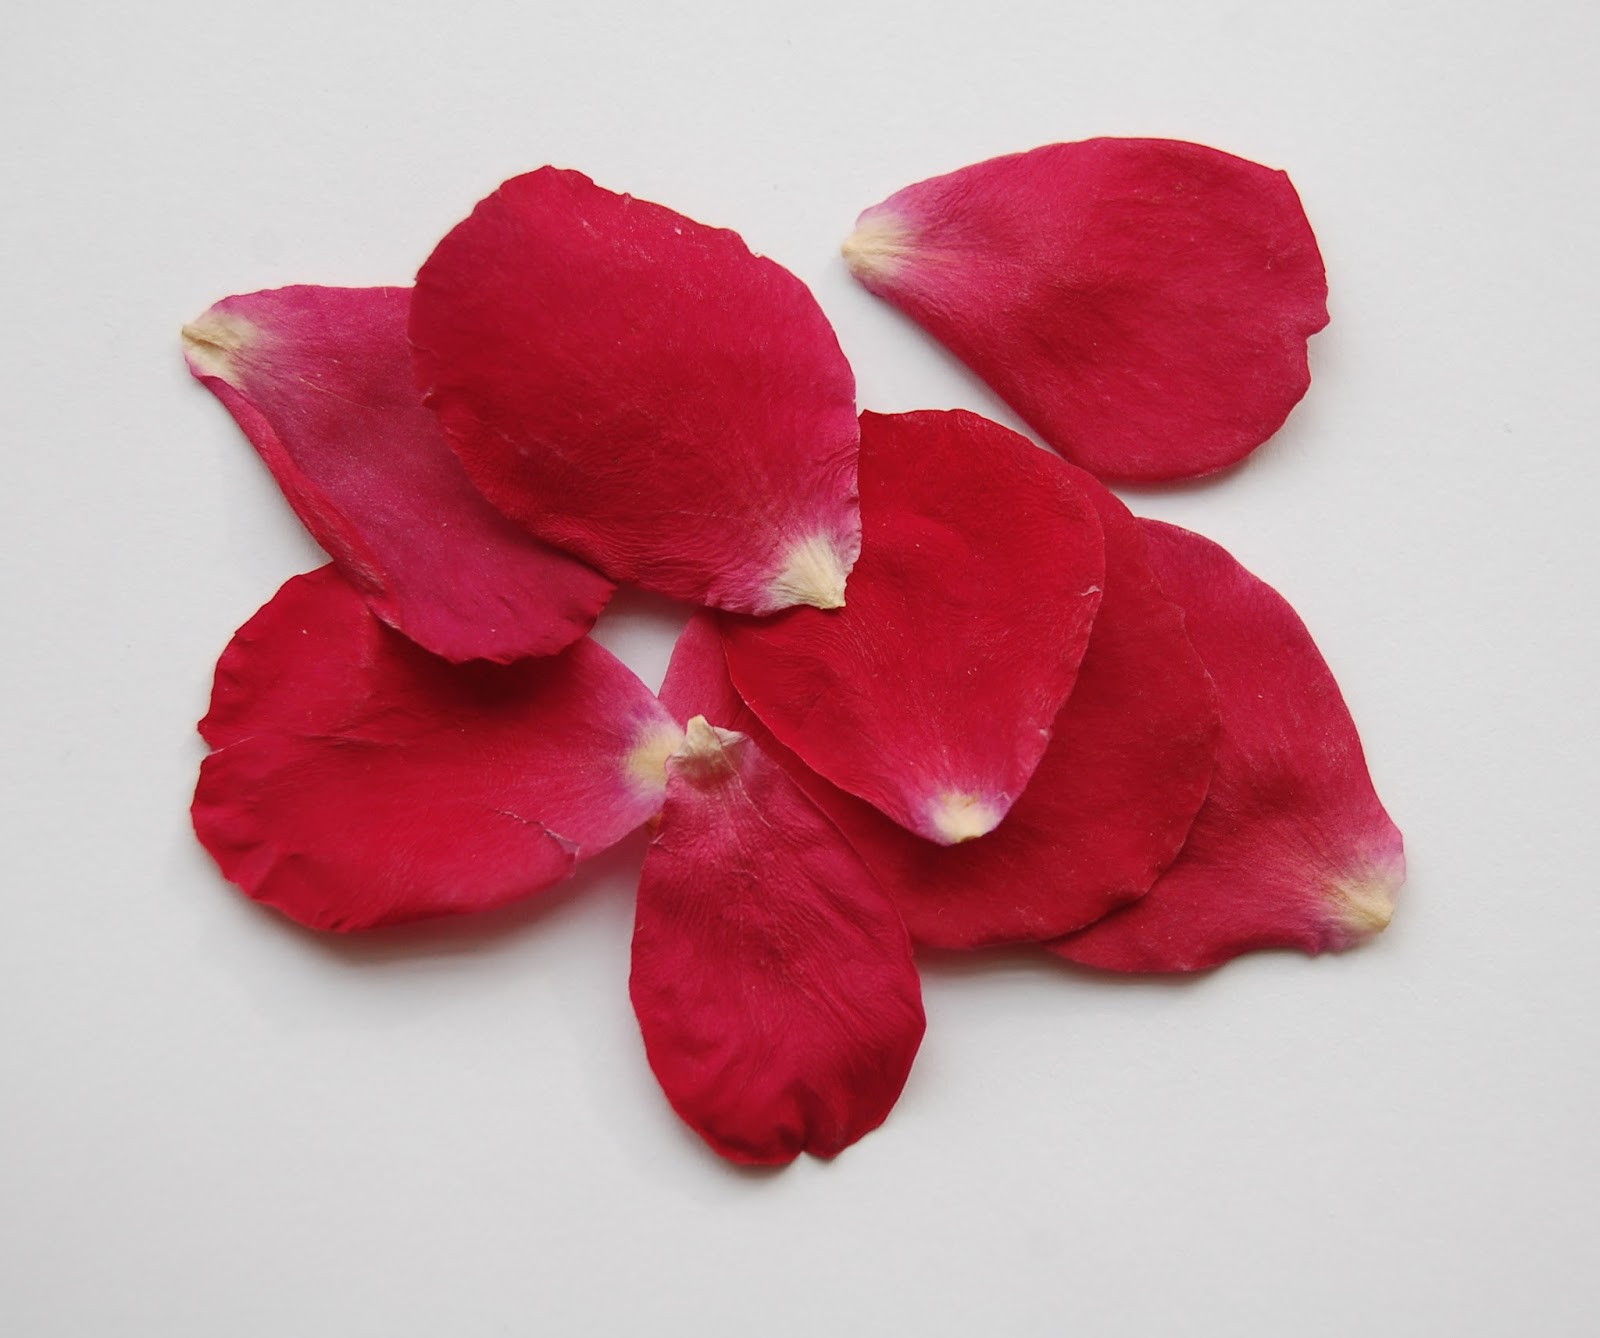 The Confetti Blog Red Rose Petals for St Valentine s Day